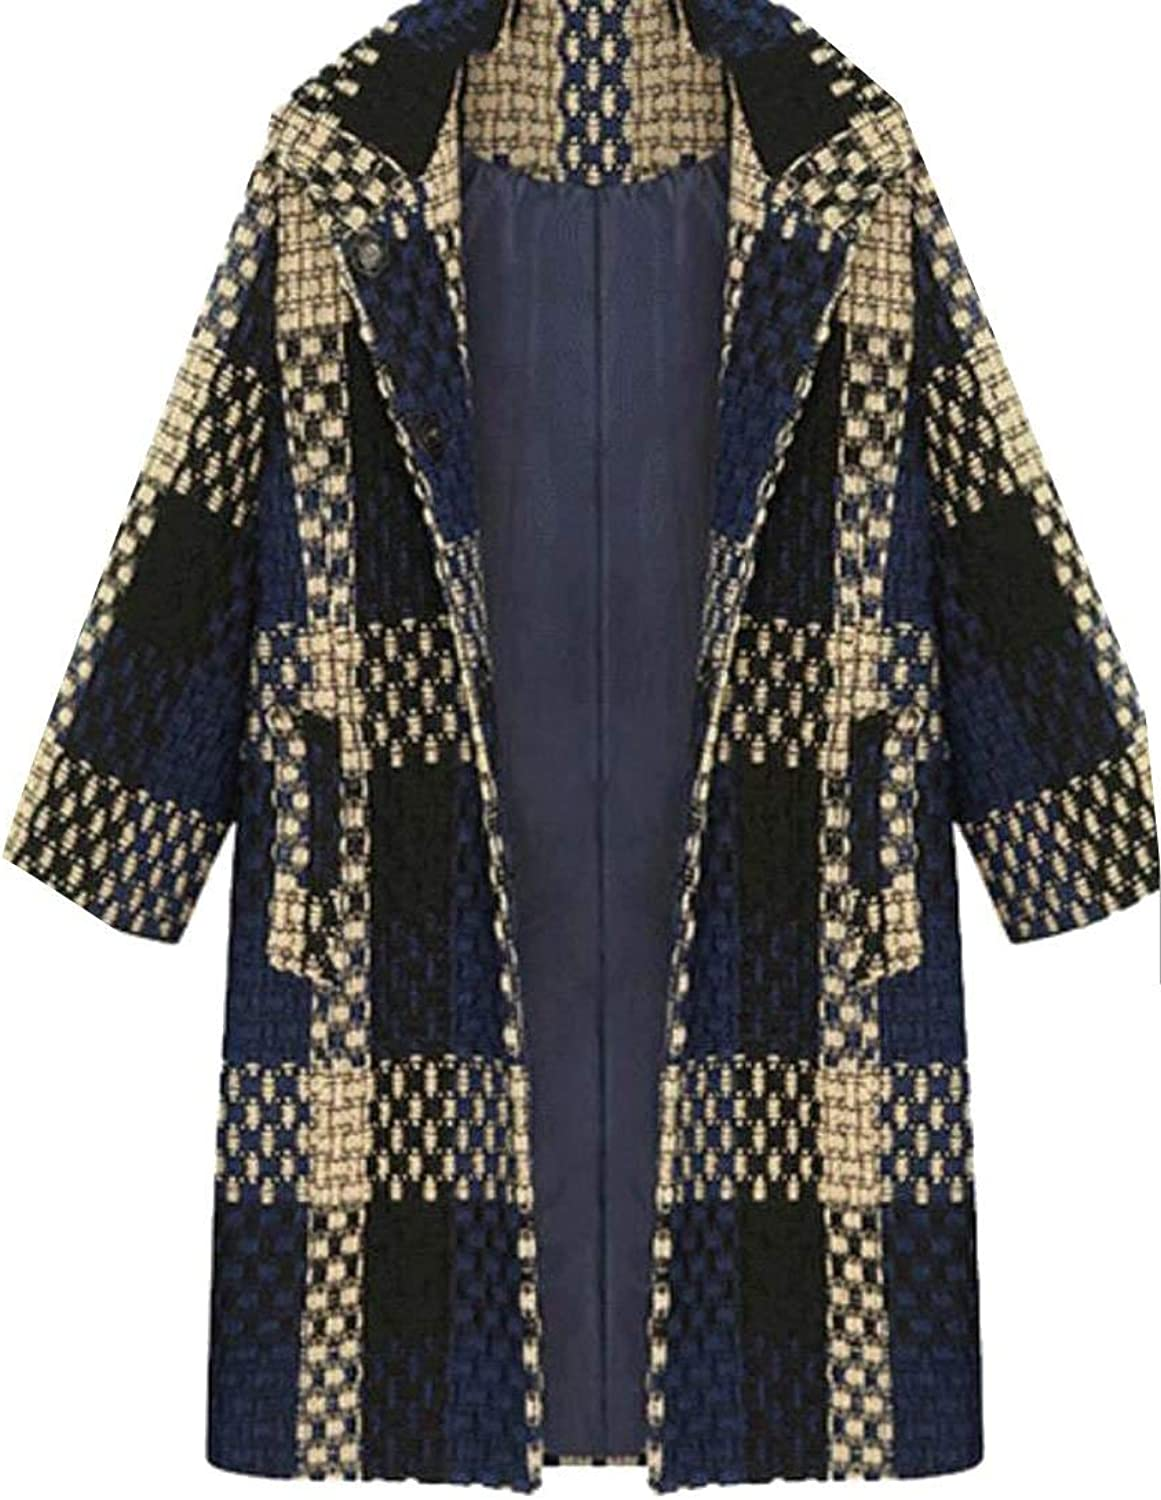 Alion Women's Casual Fit Plaid Open Front Wool Jackets Overcoat